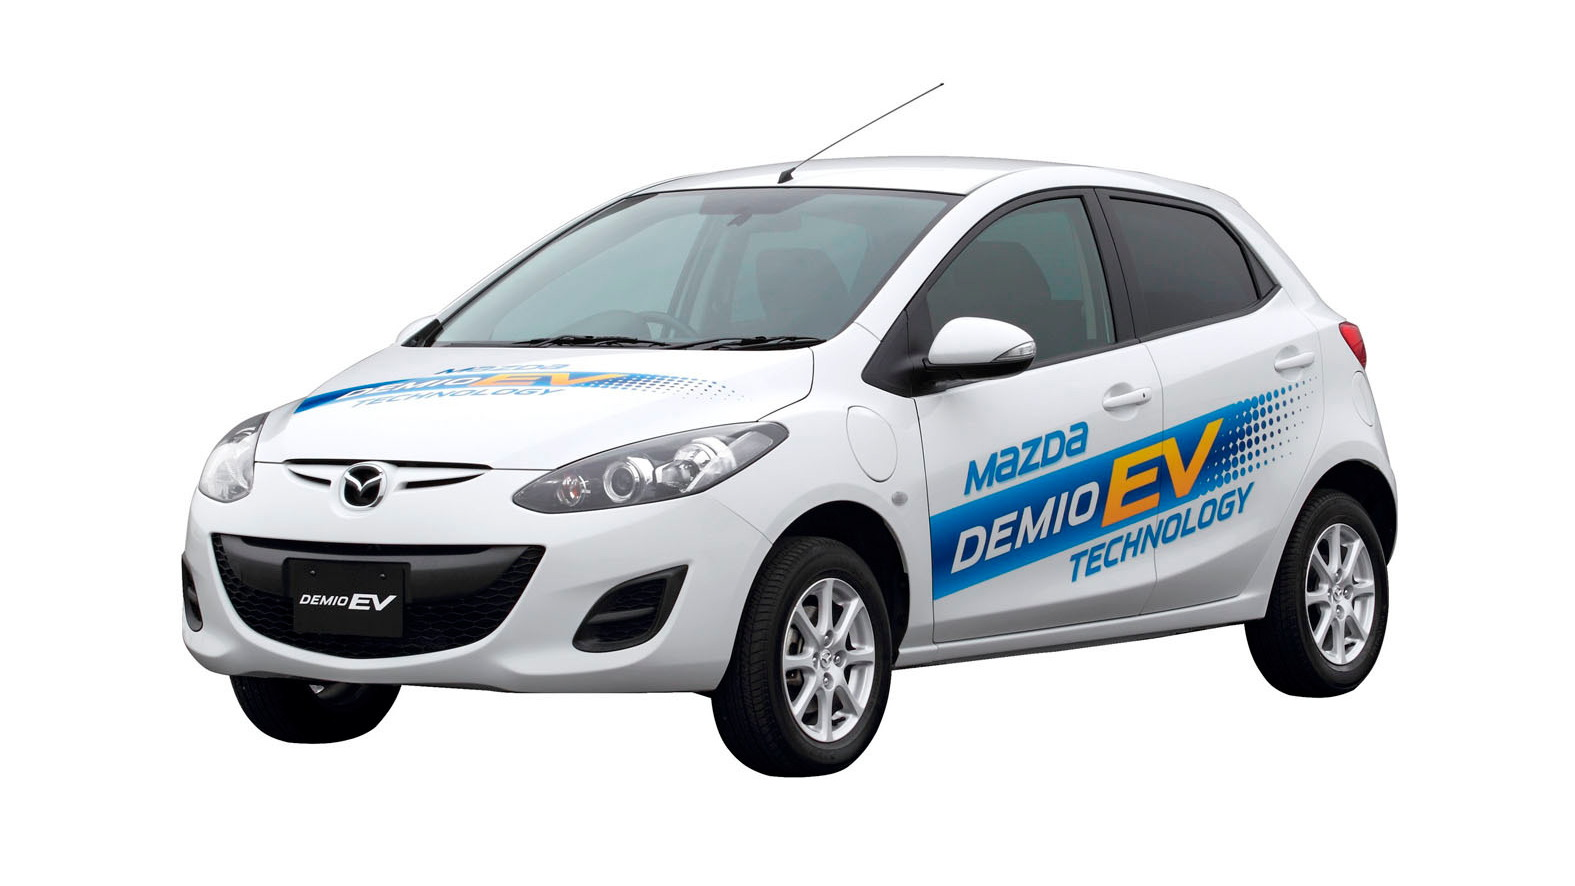 Mazda Demio EV test-fleet electric car in Japan (aka Mazda2)